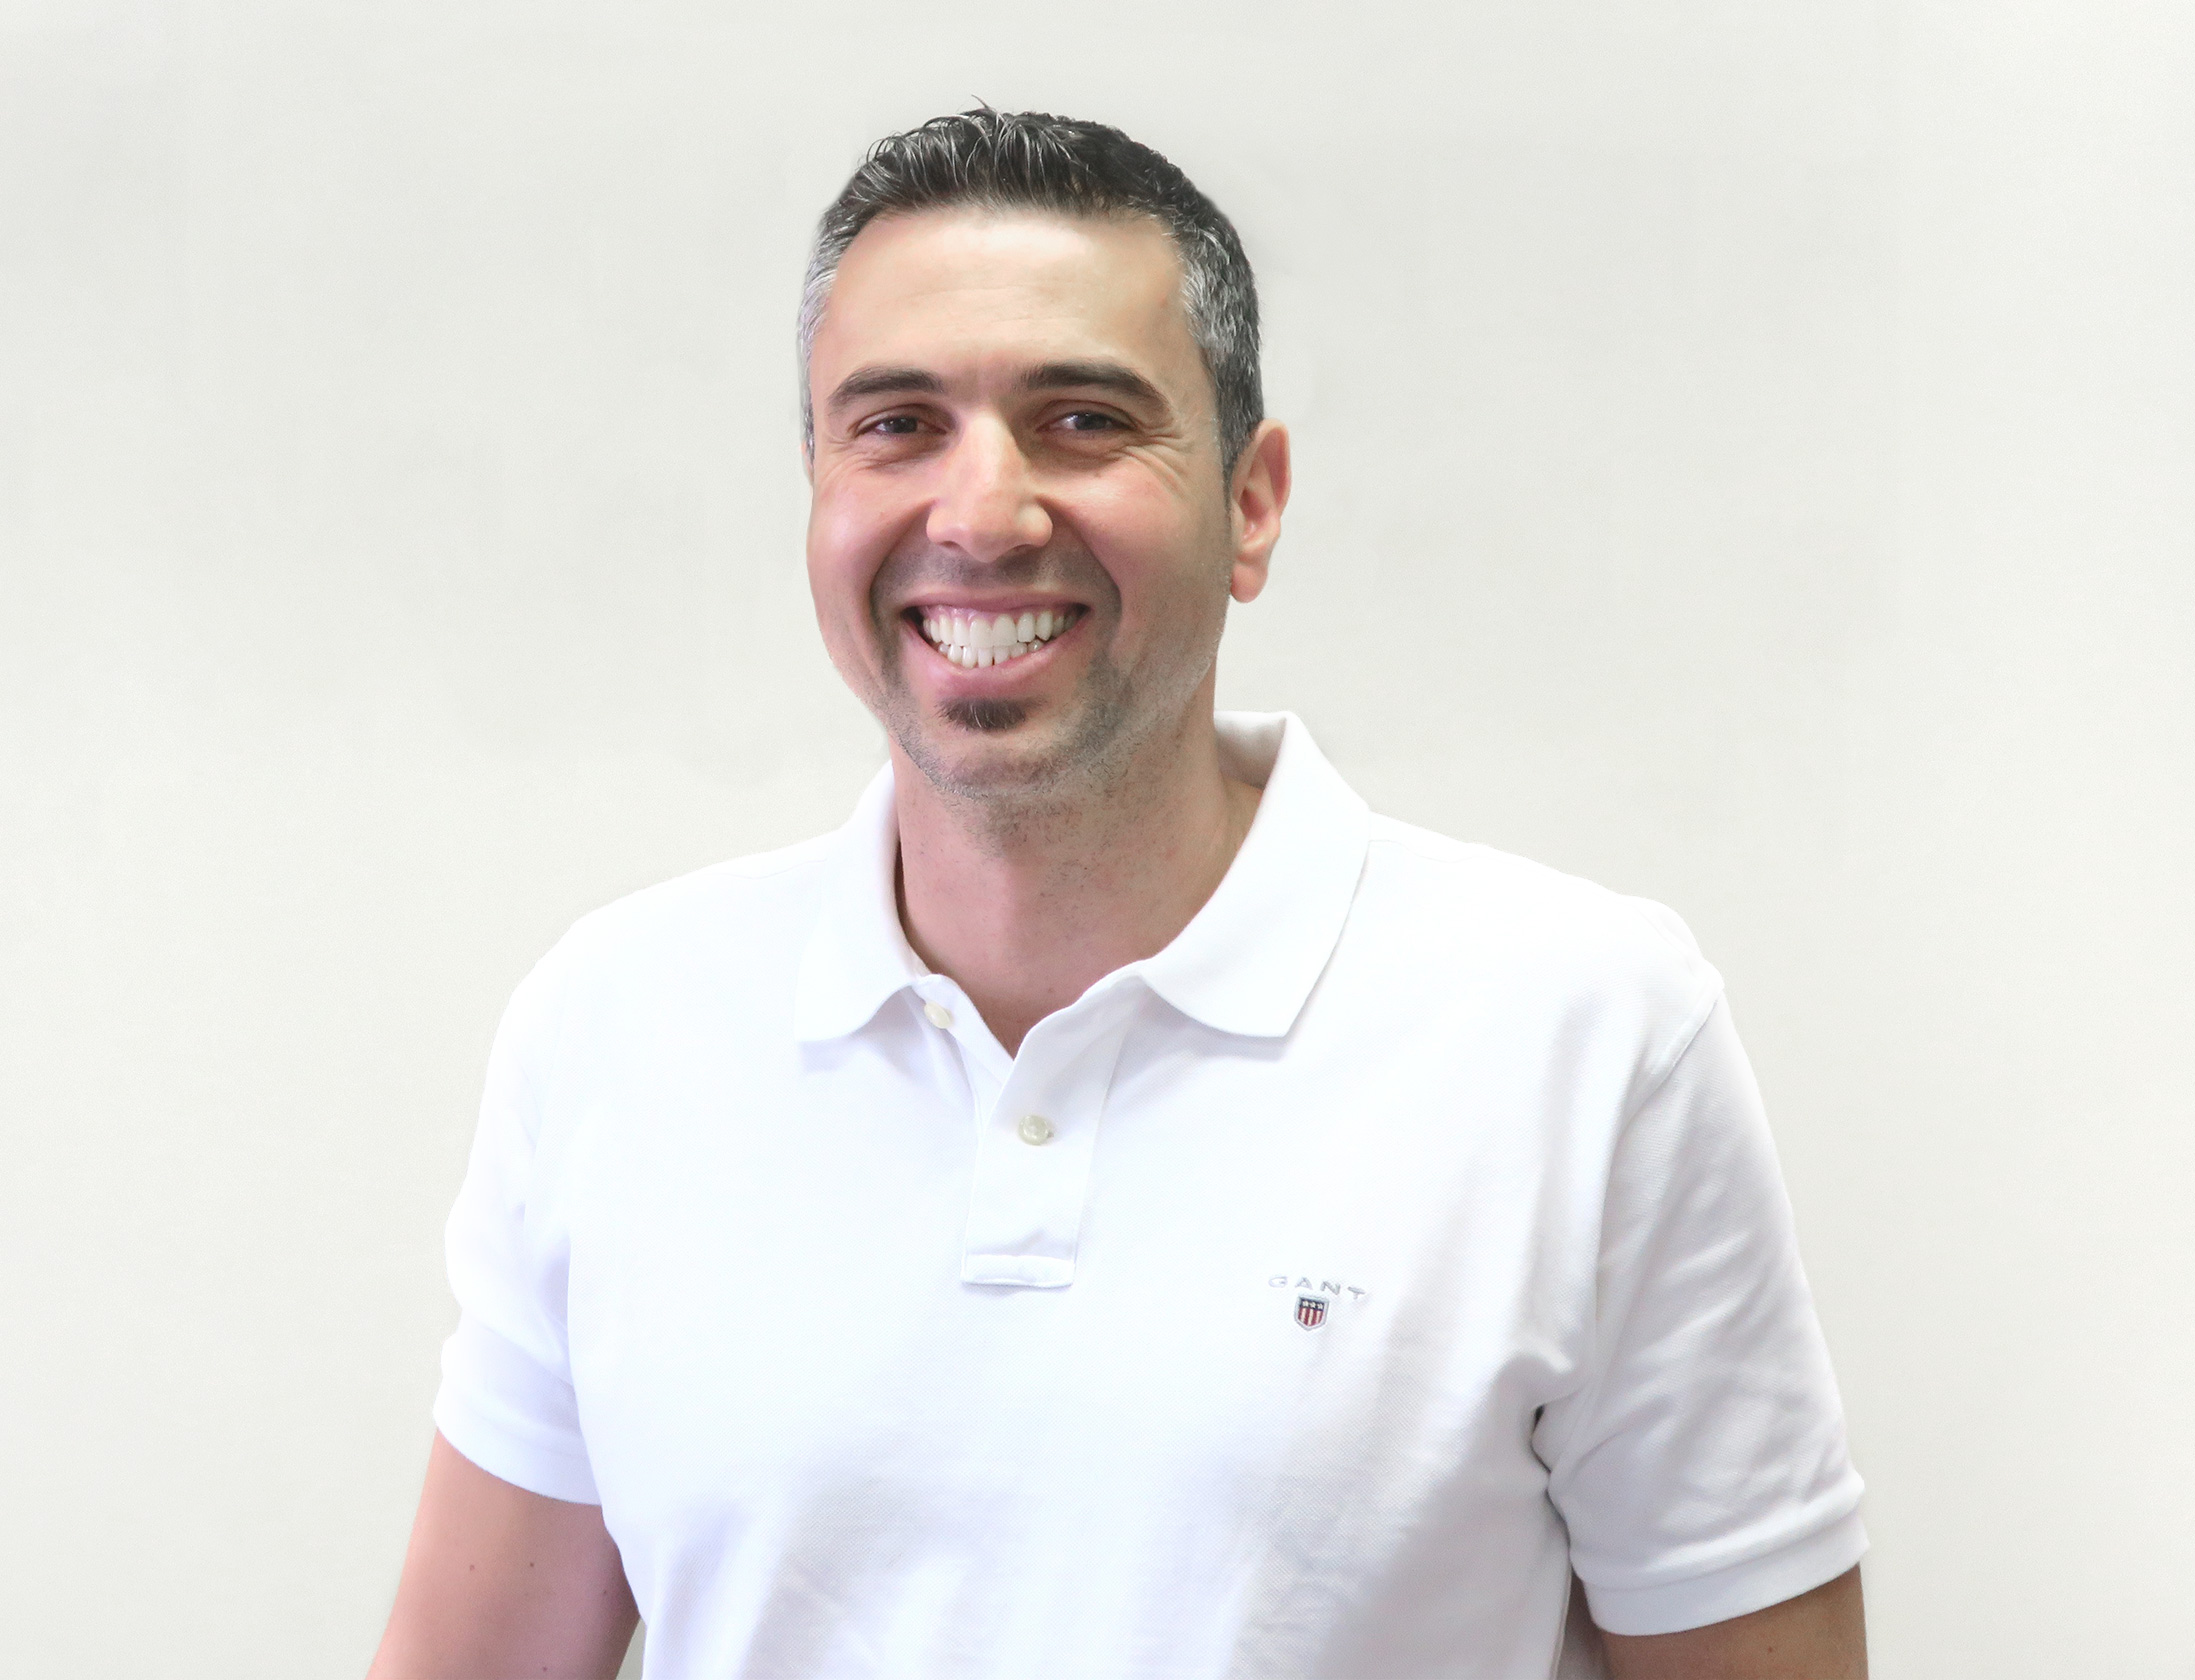 George Kotsifakis, dental technician and denture prosthetist at Complete Dentures in Melbourne